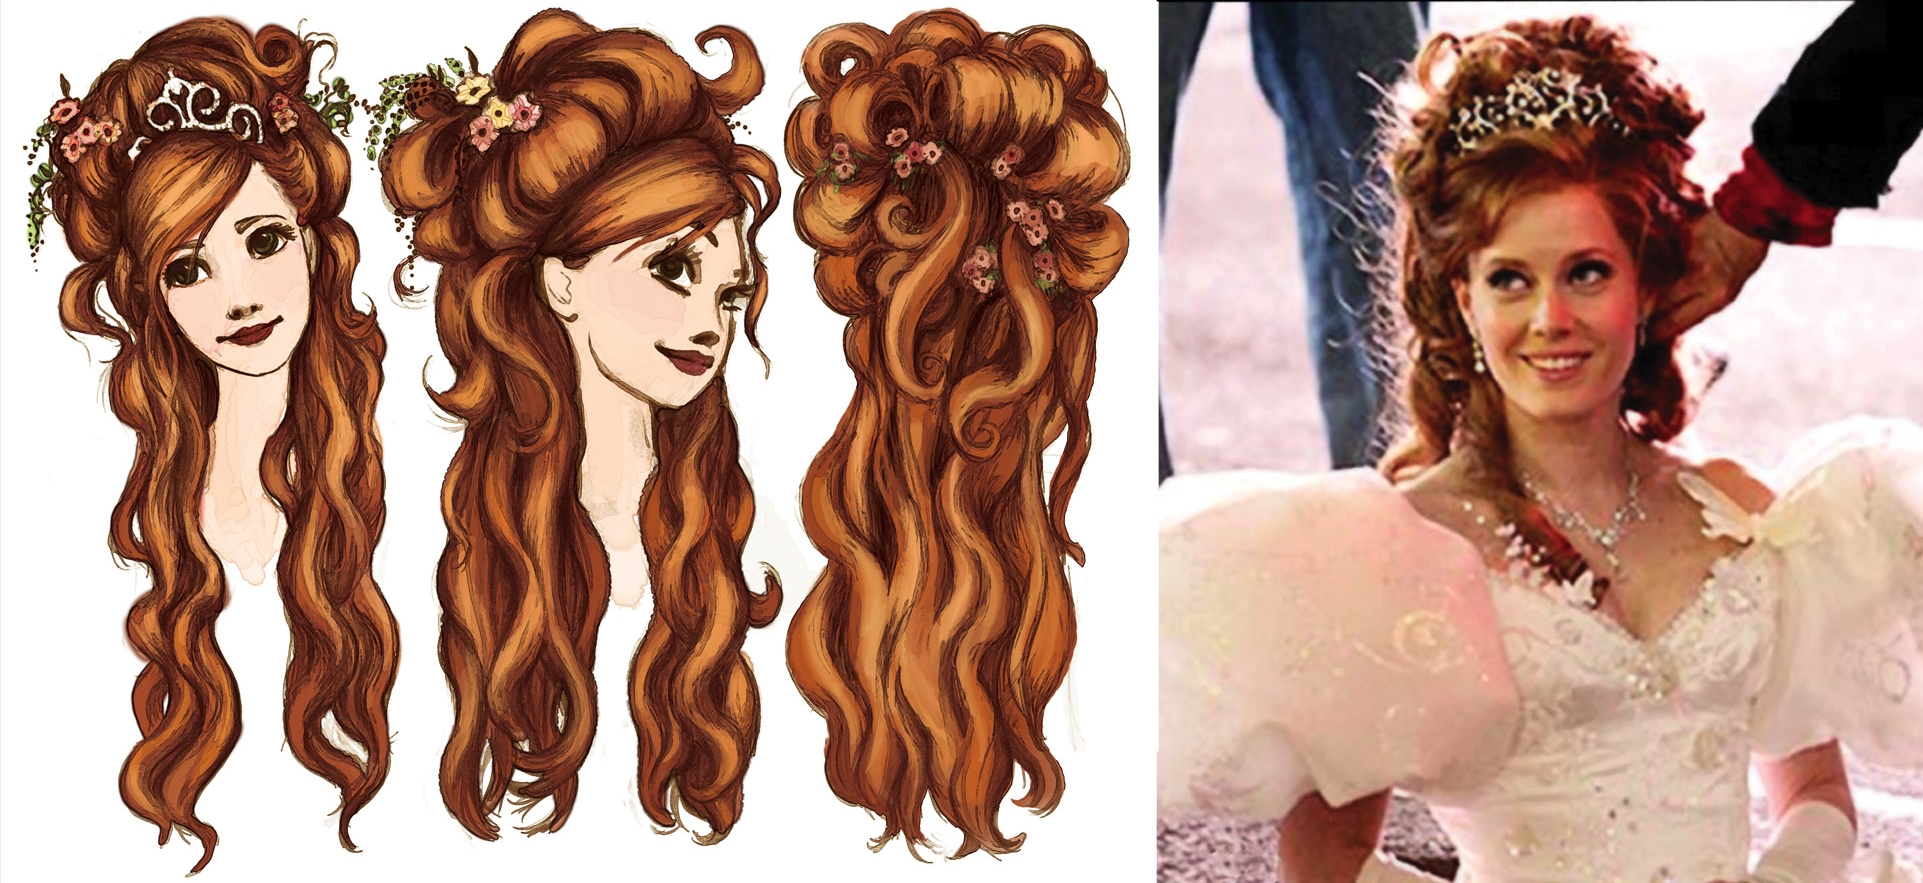 GISELLE HAIR DESIGNS / AMY ADAMS //VISUAL DEVELOPMENT FOR ENCHANTED